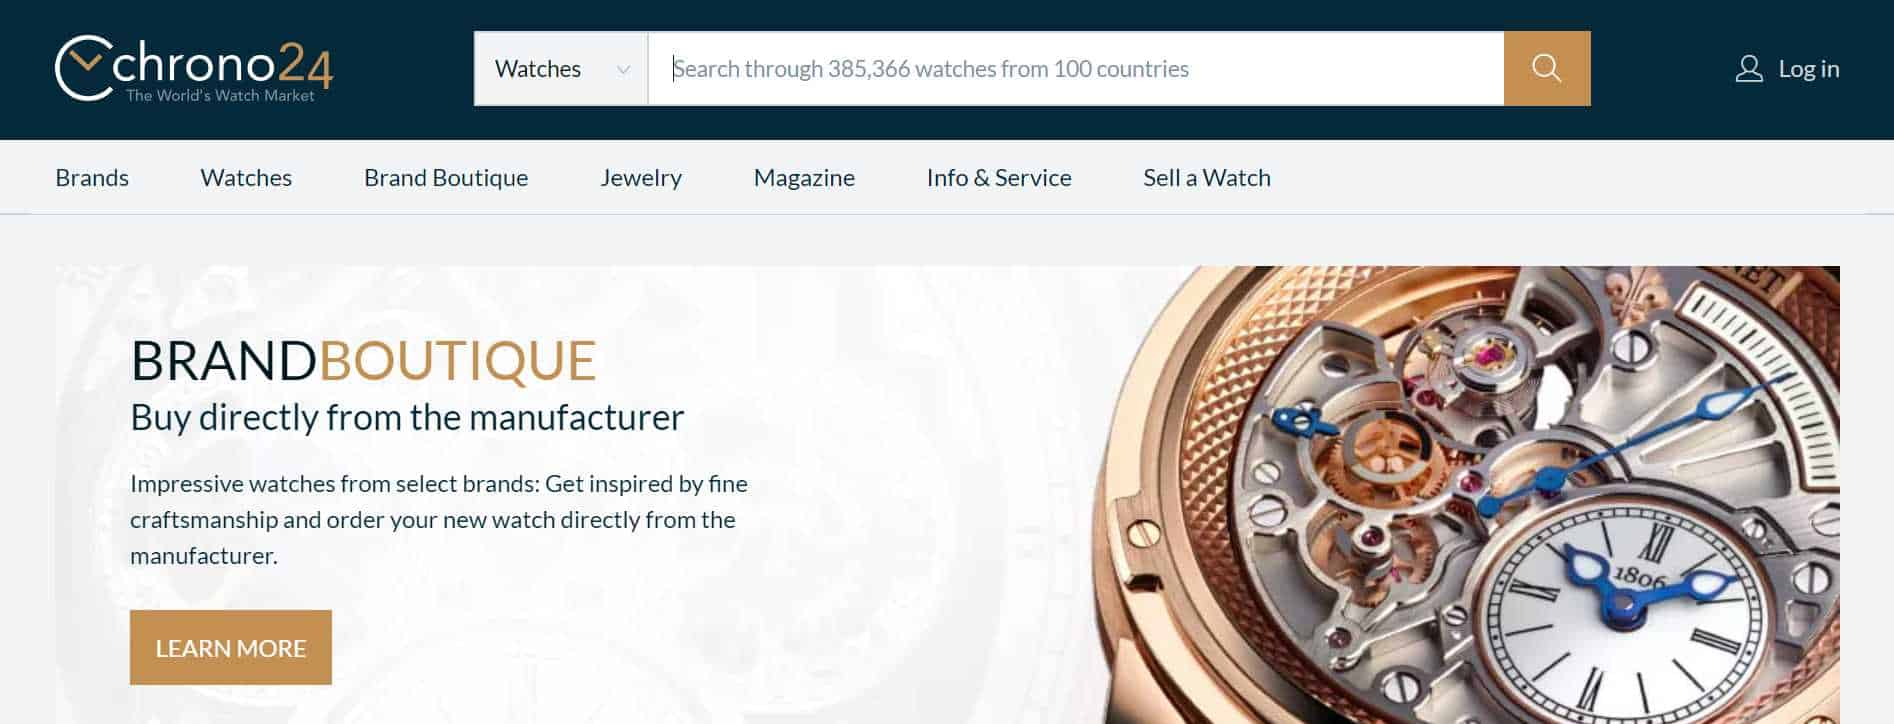 chrono24 luxury watches online